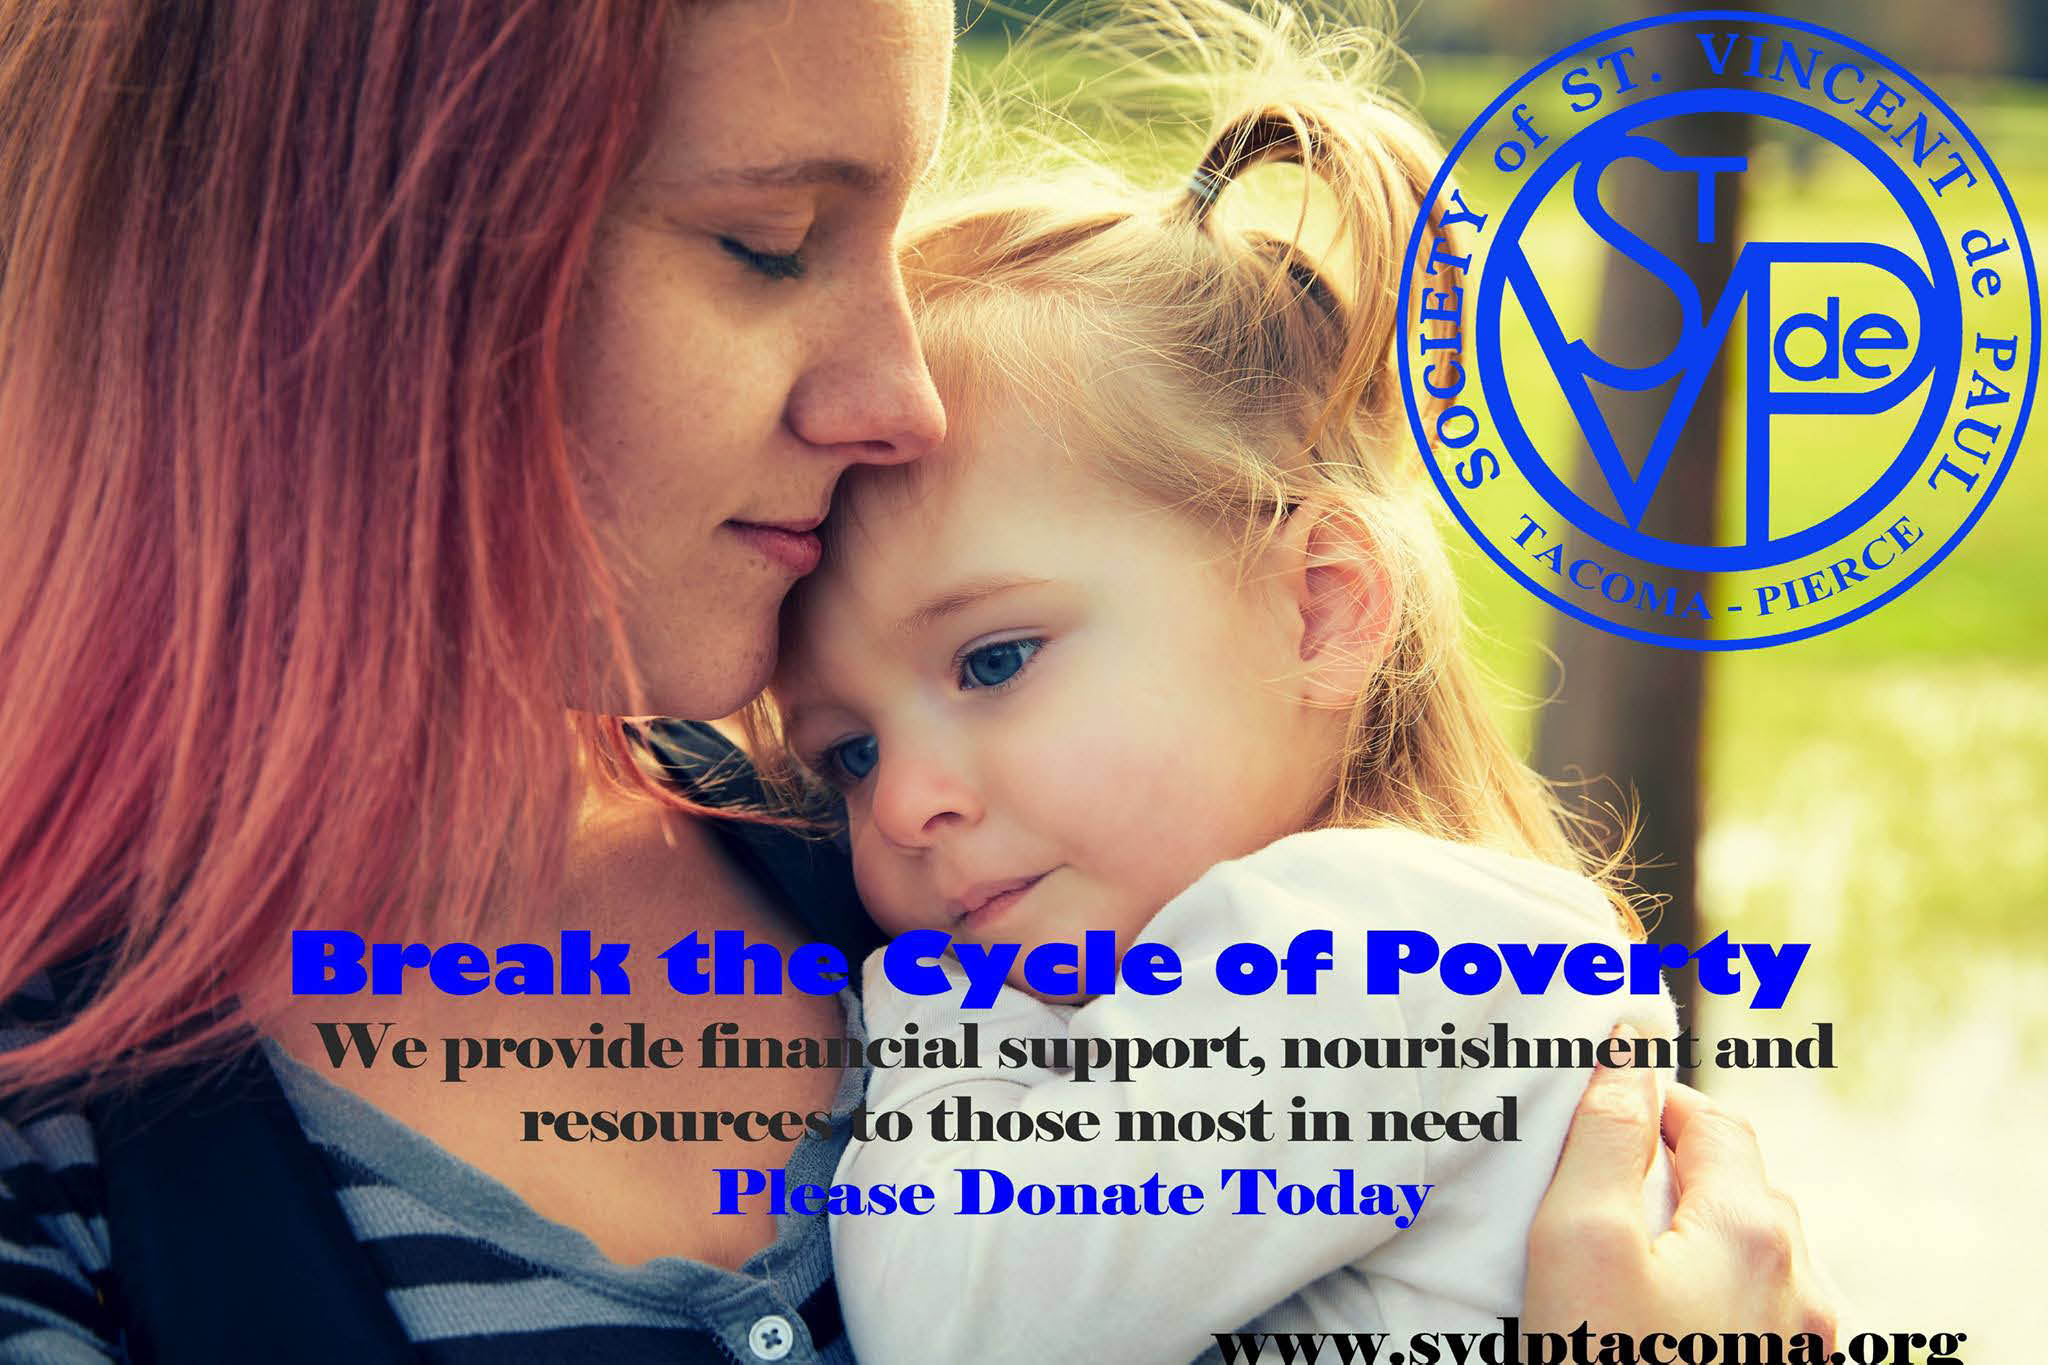 St Vincent de Paul Tacoma-Pierce thrift stores - helping to break the cycle of poverty - please donate today